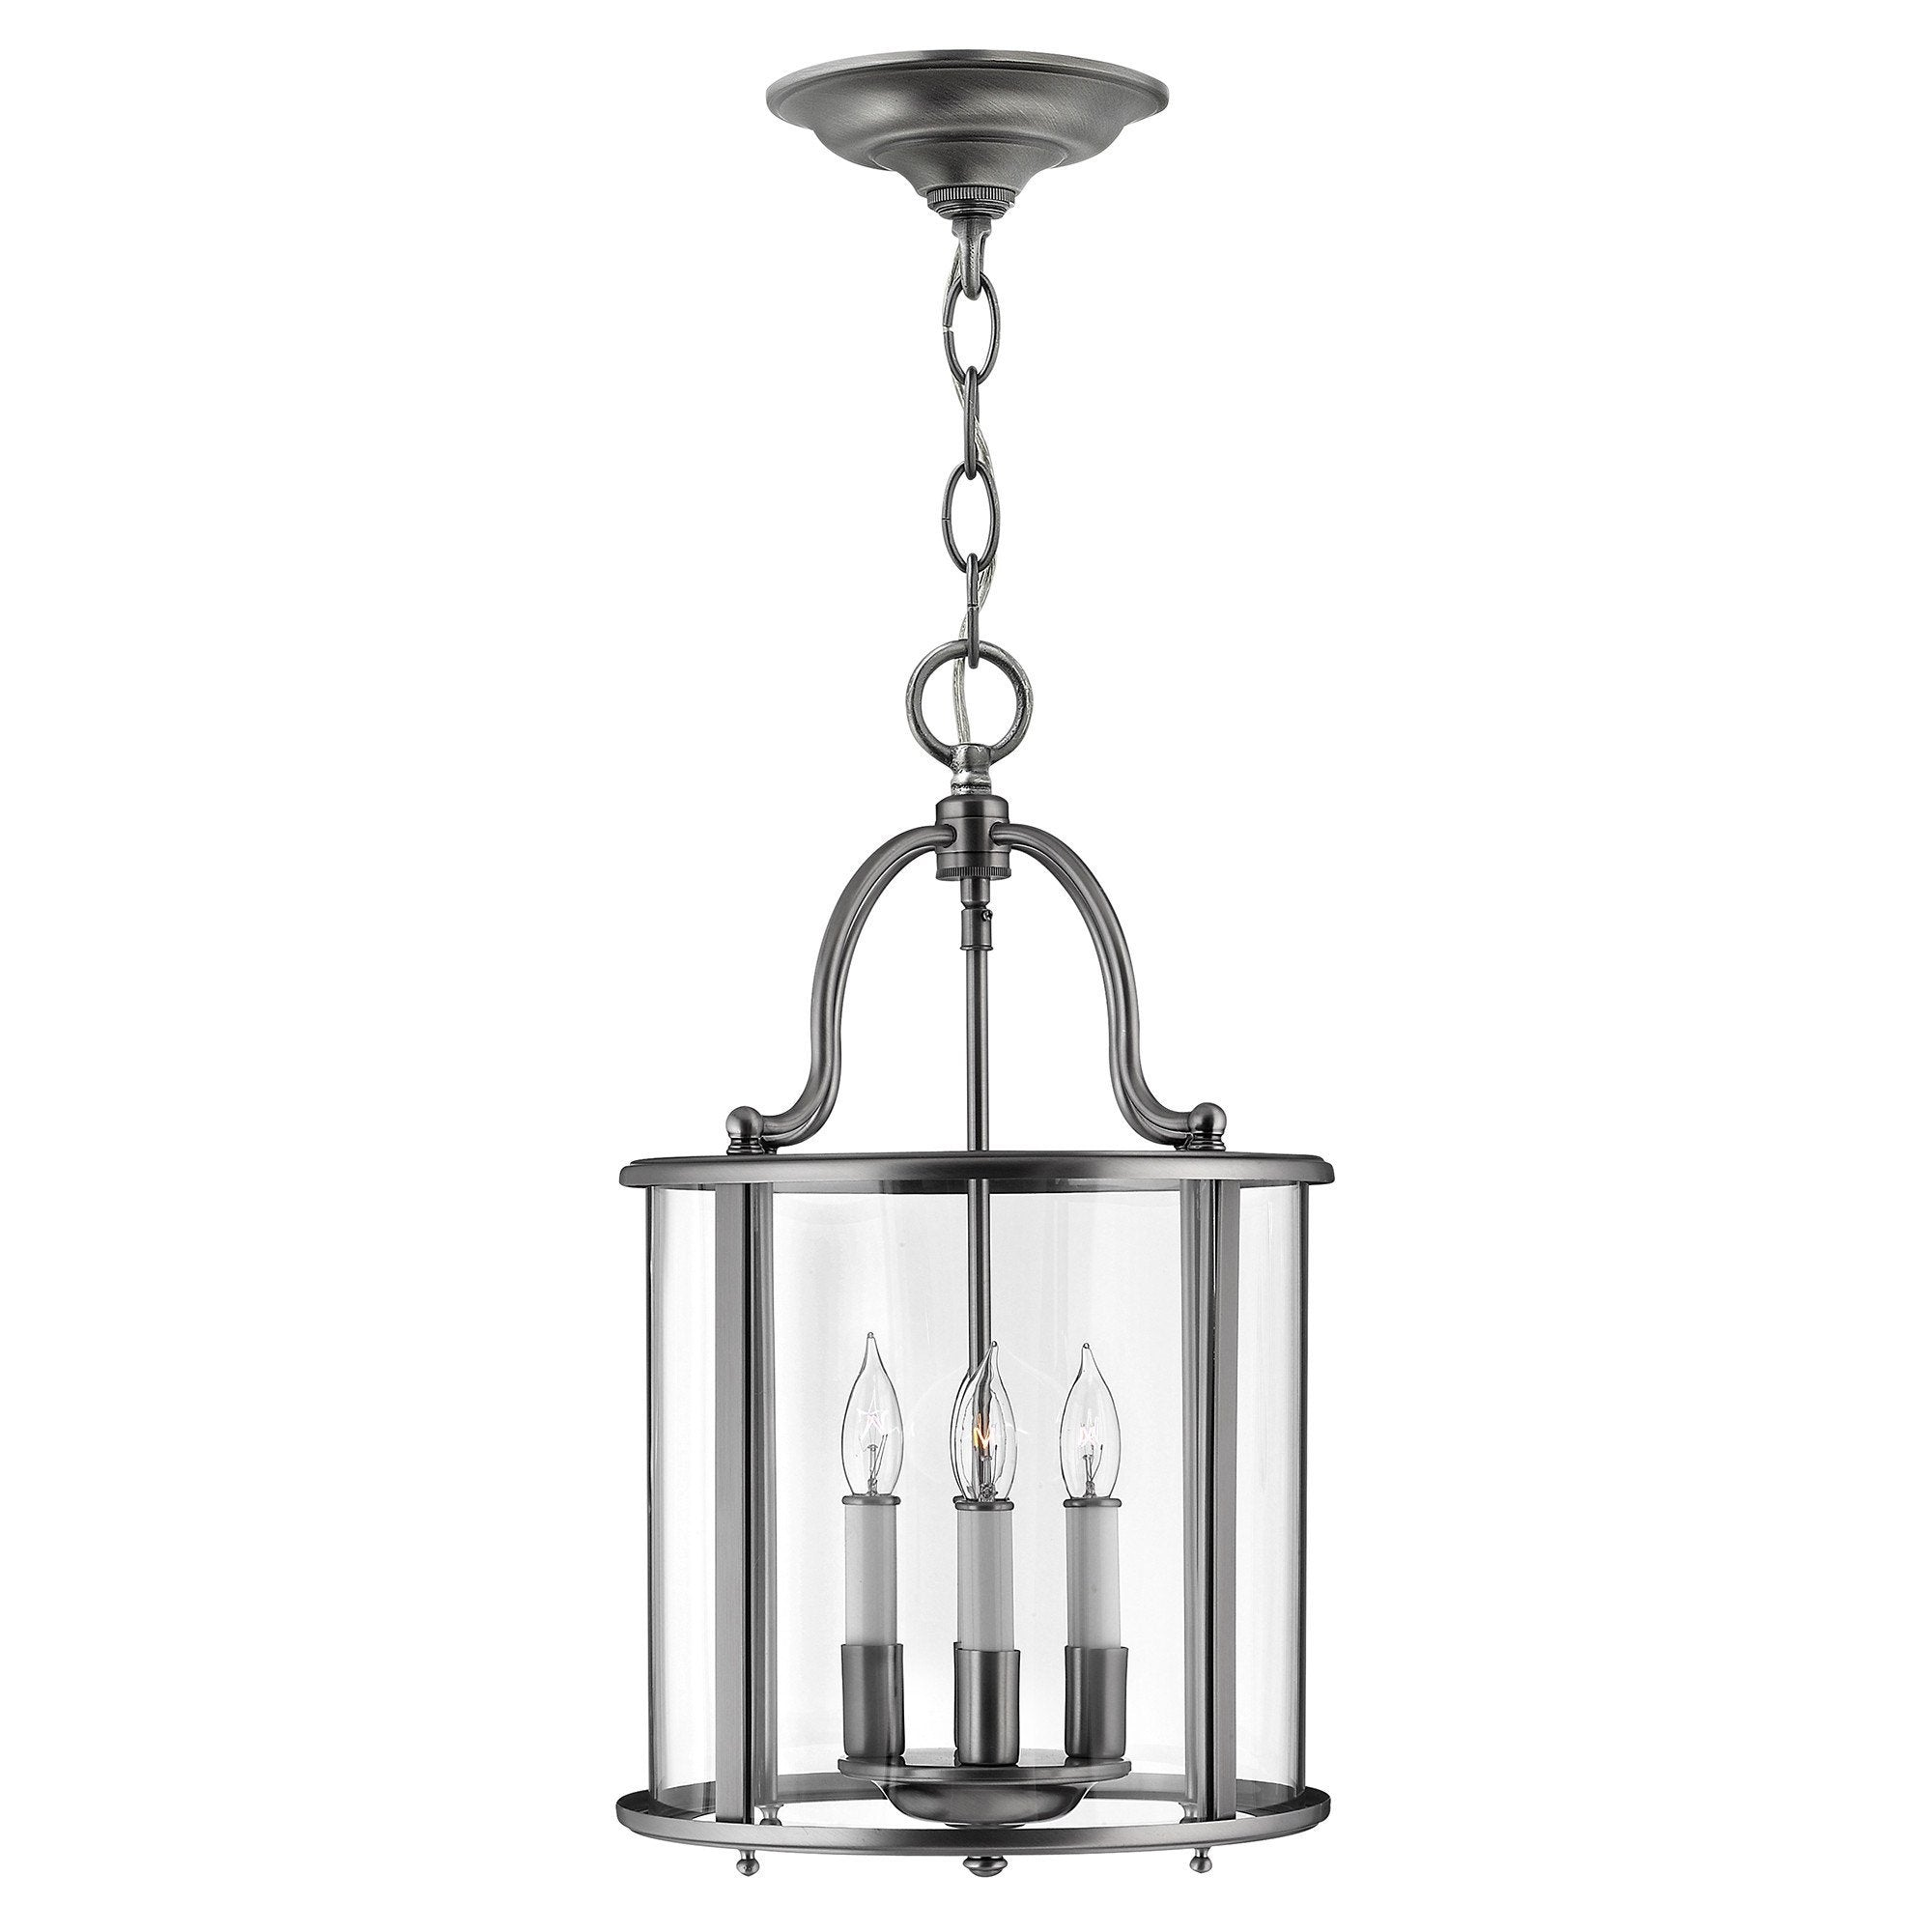 Hinkely Gentry Medium Pendant Light - London Lighting - 2